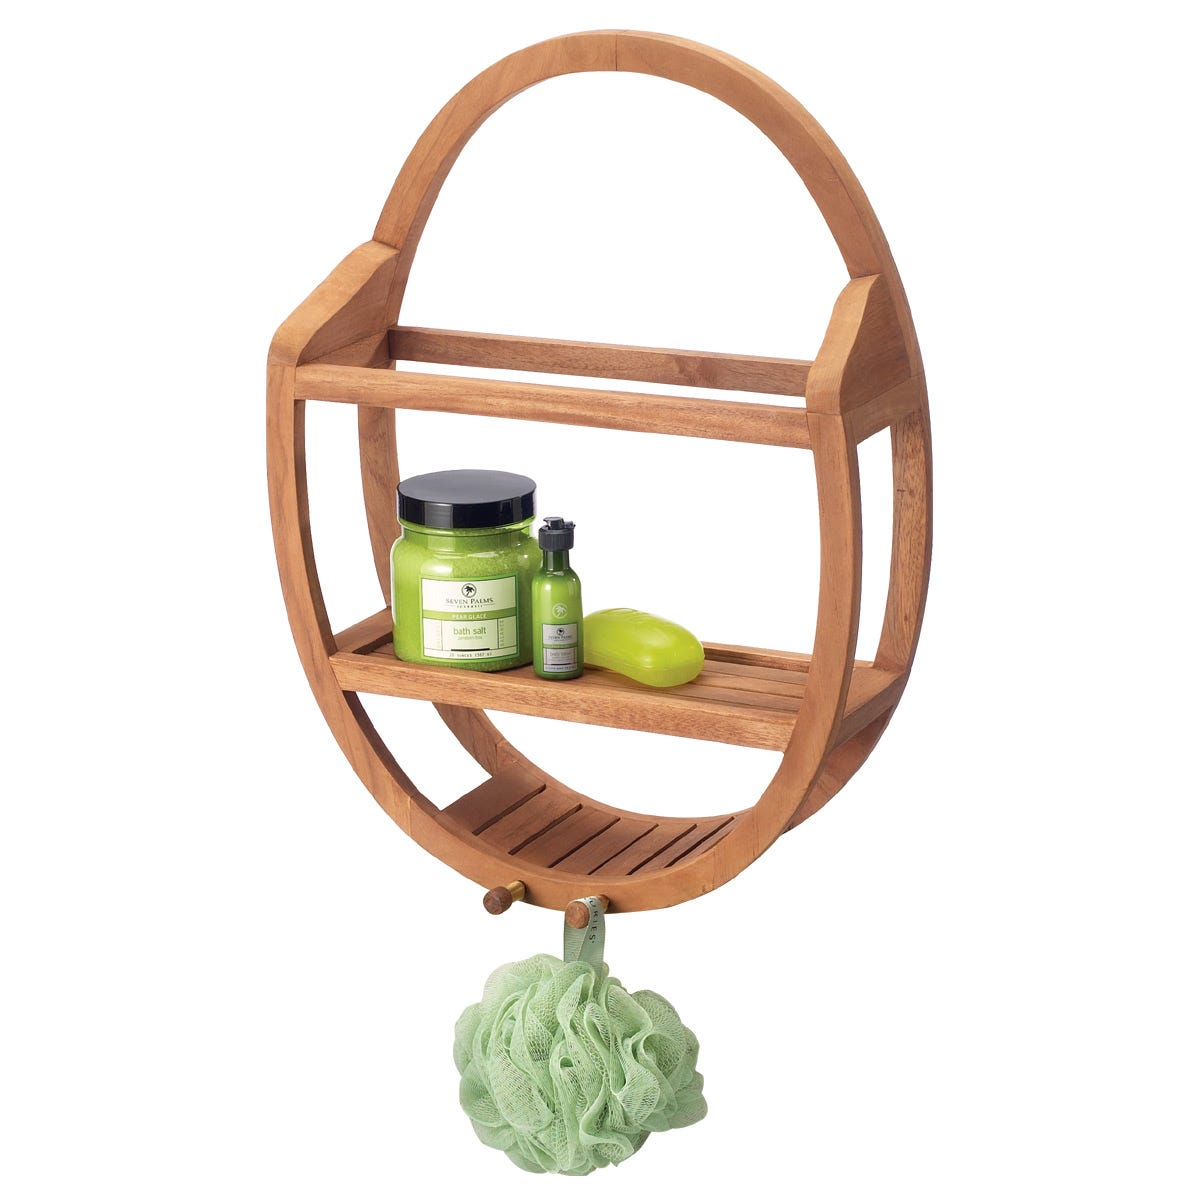 Oval Teak Shower Organizer - from Sporty\'s Tool Shop